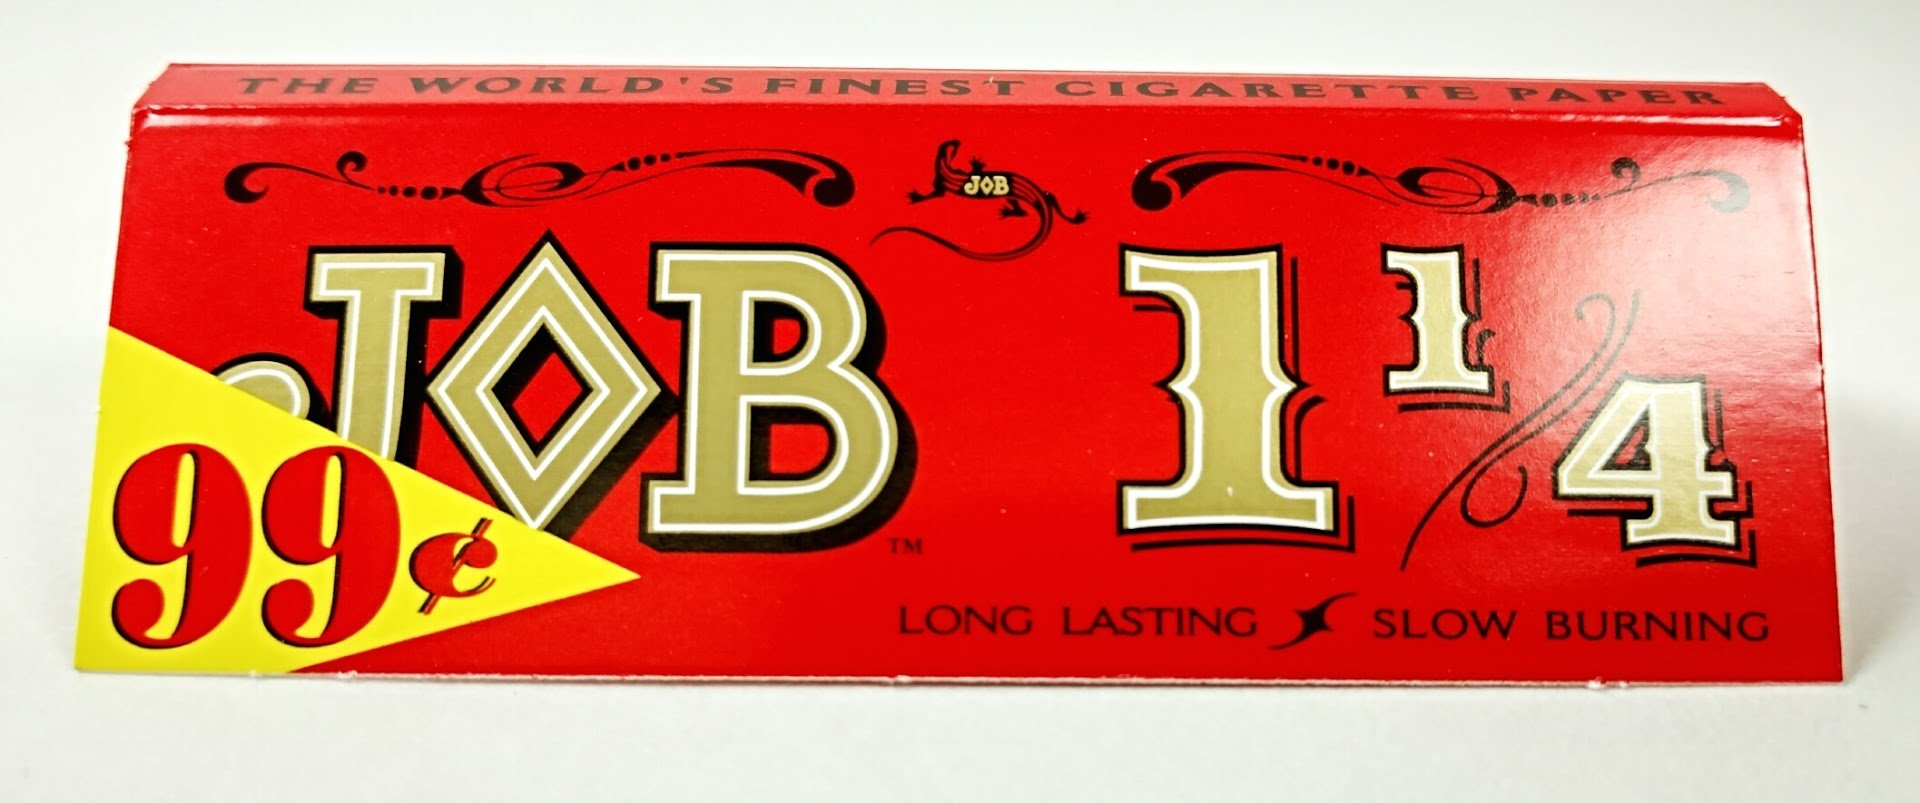 Job 1 1/4 Slow Burning Cigarette Rolling Papers 100 Count Re-usable Tin Jar